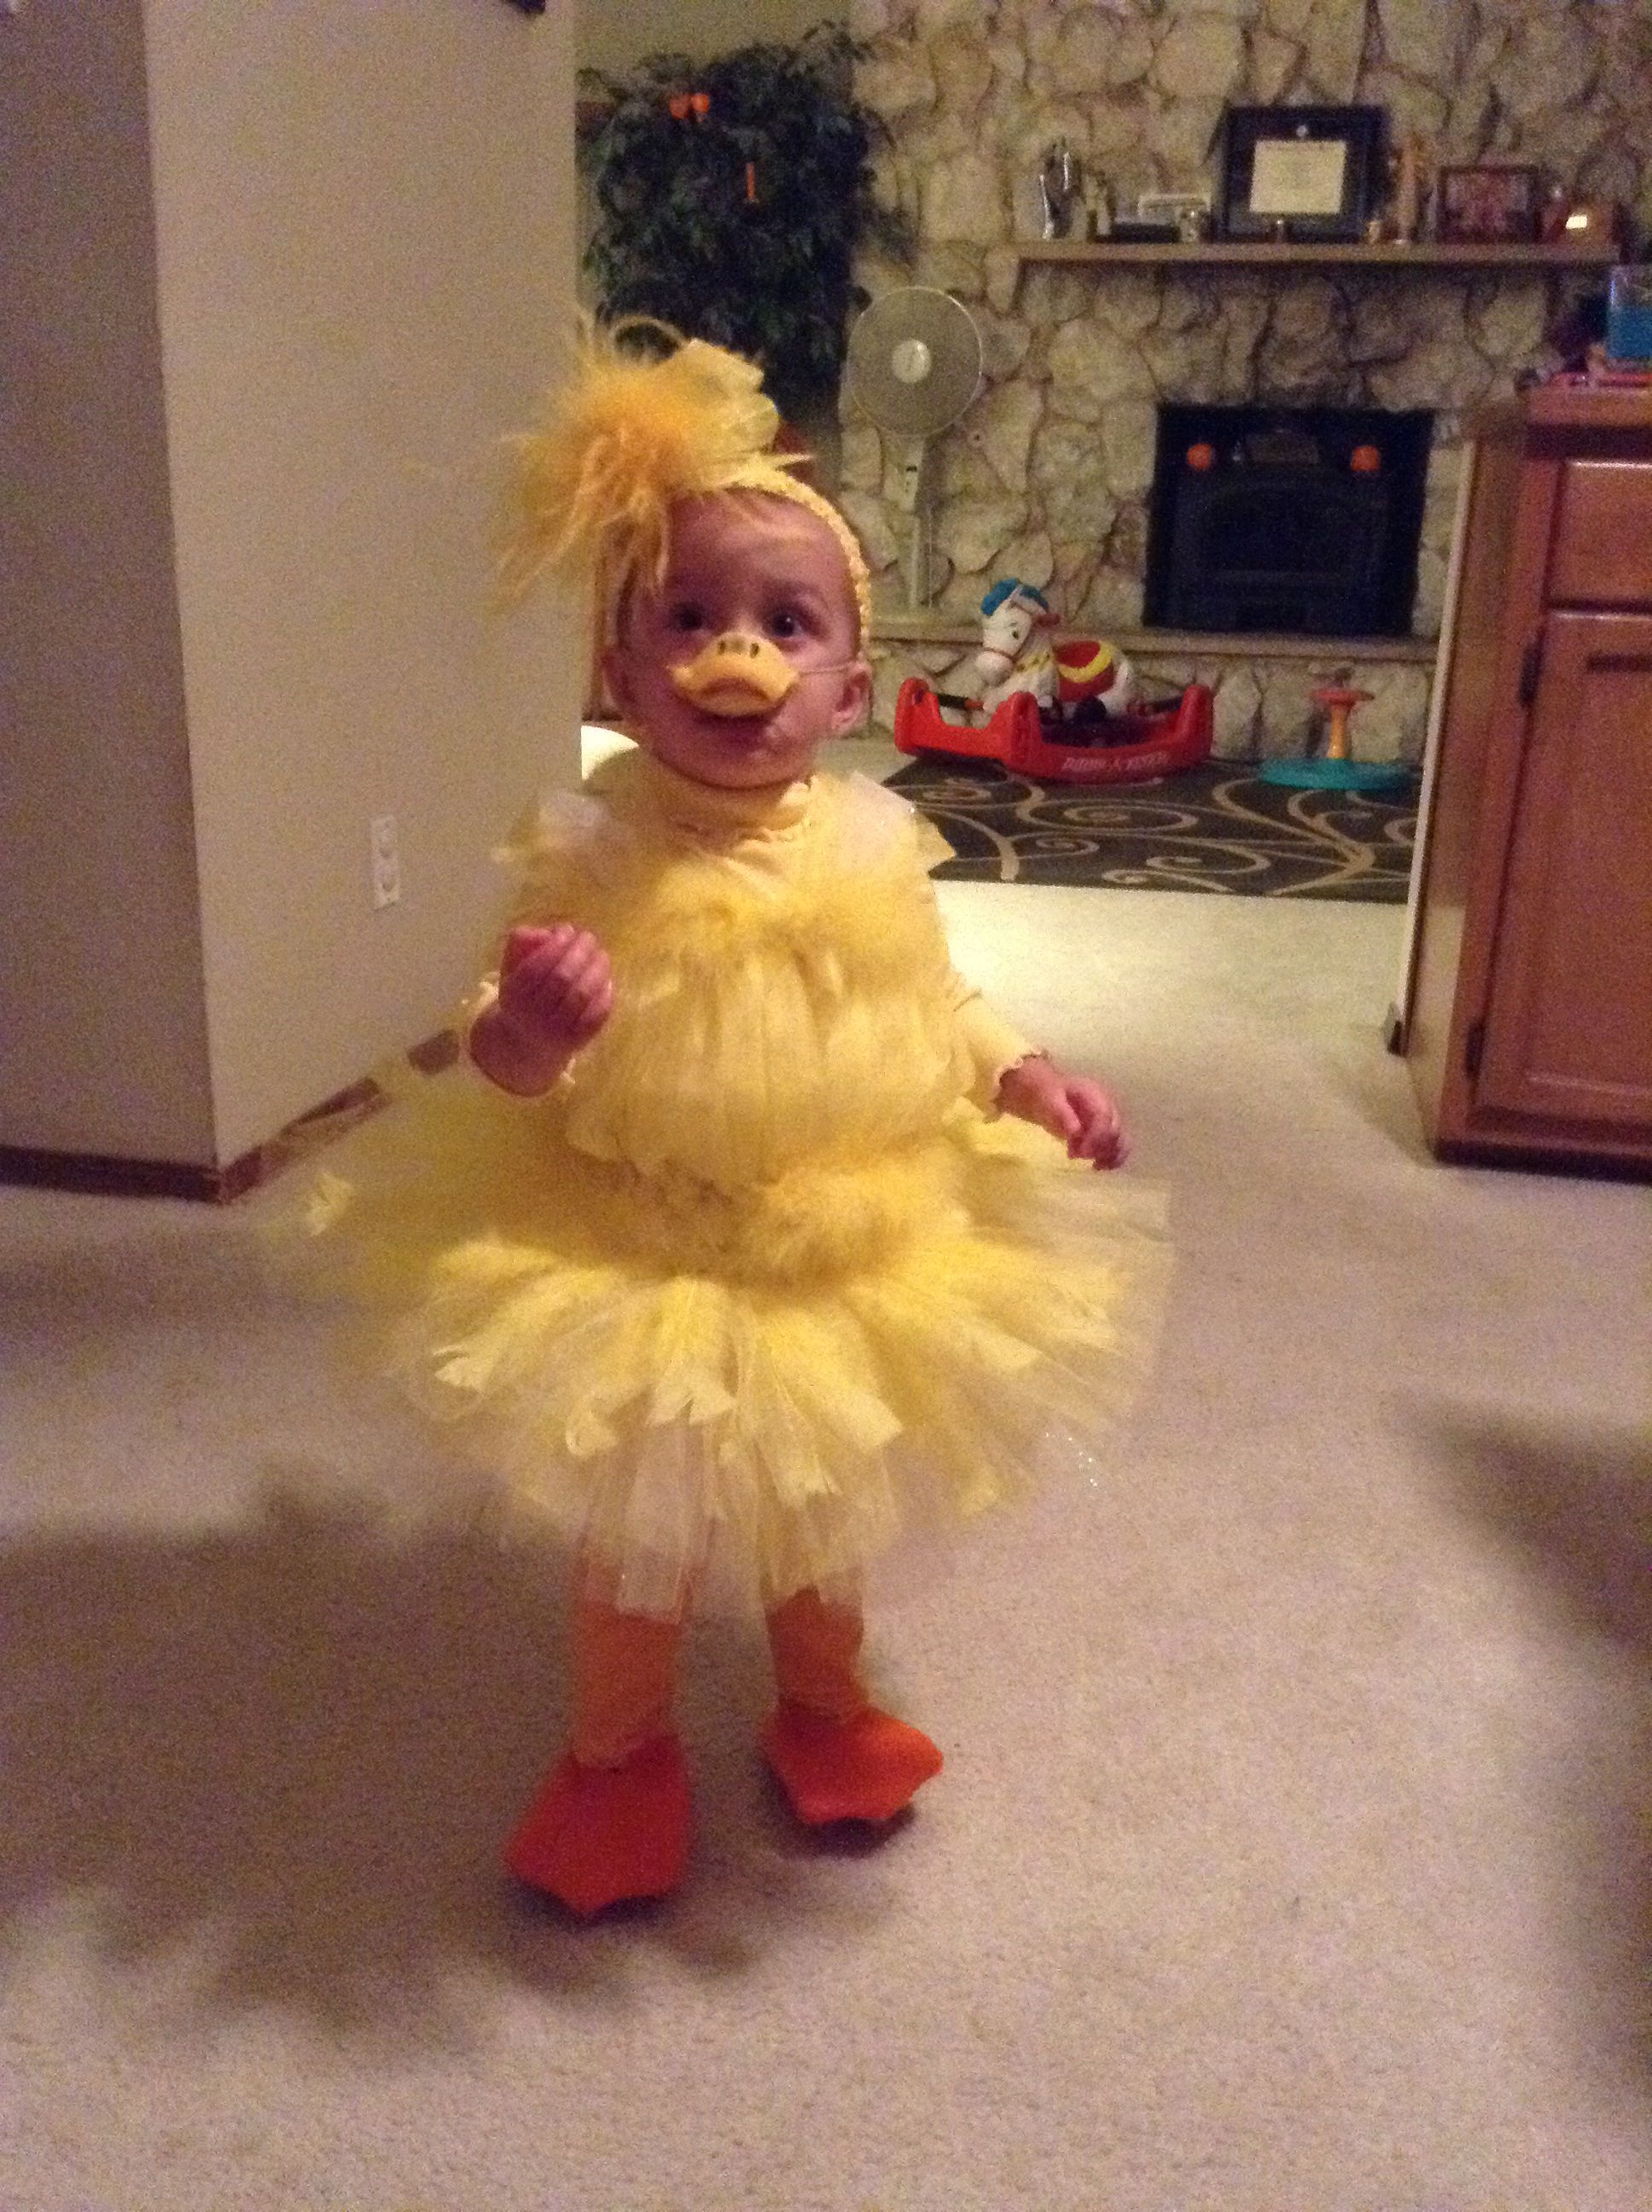 c7882005c Baby Duck Tutu Costume  love the tutu idea for Nora s duck costume ...